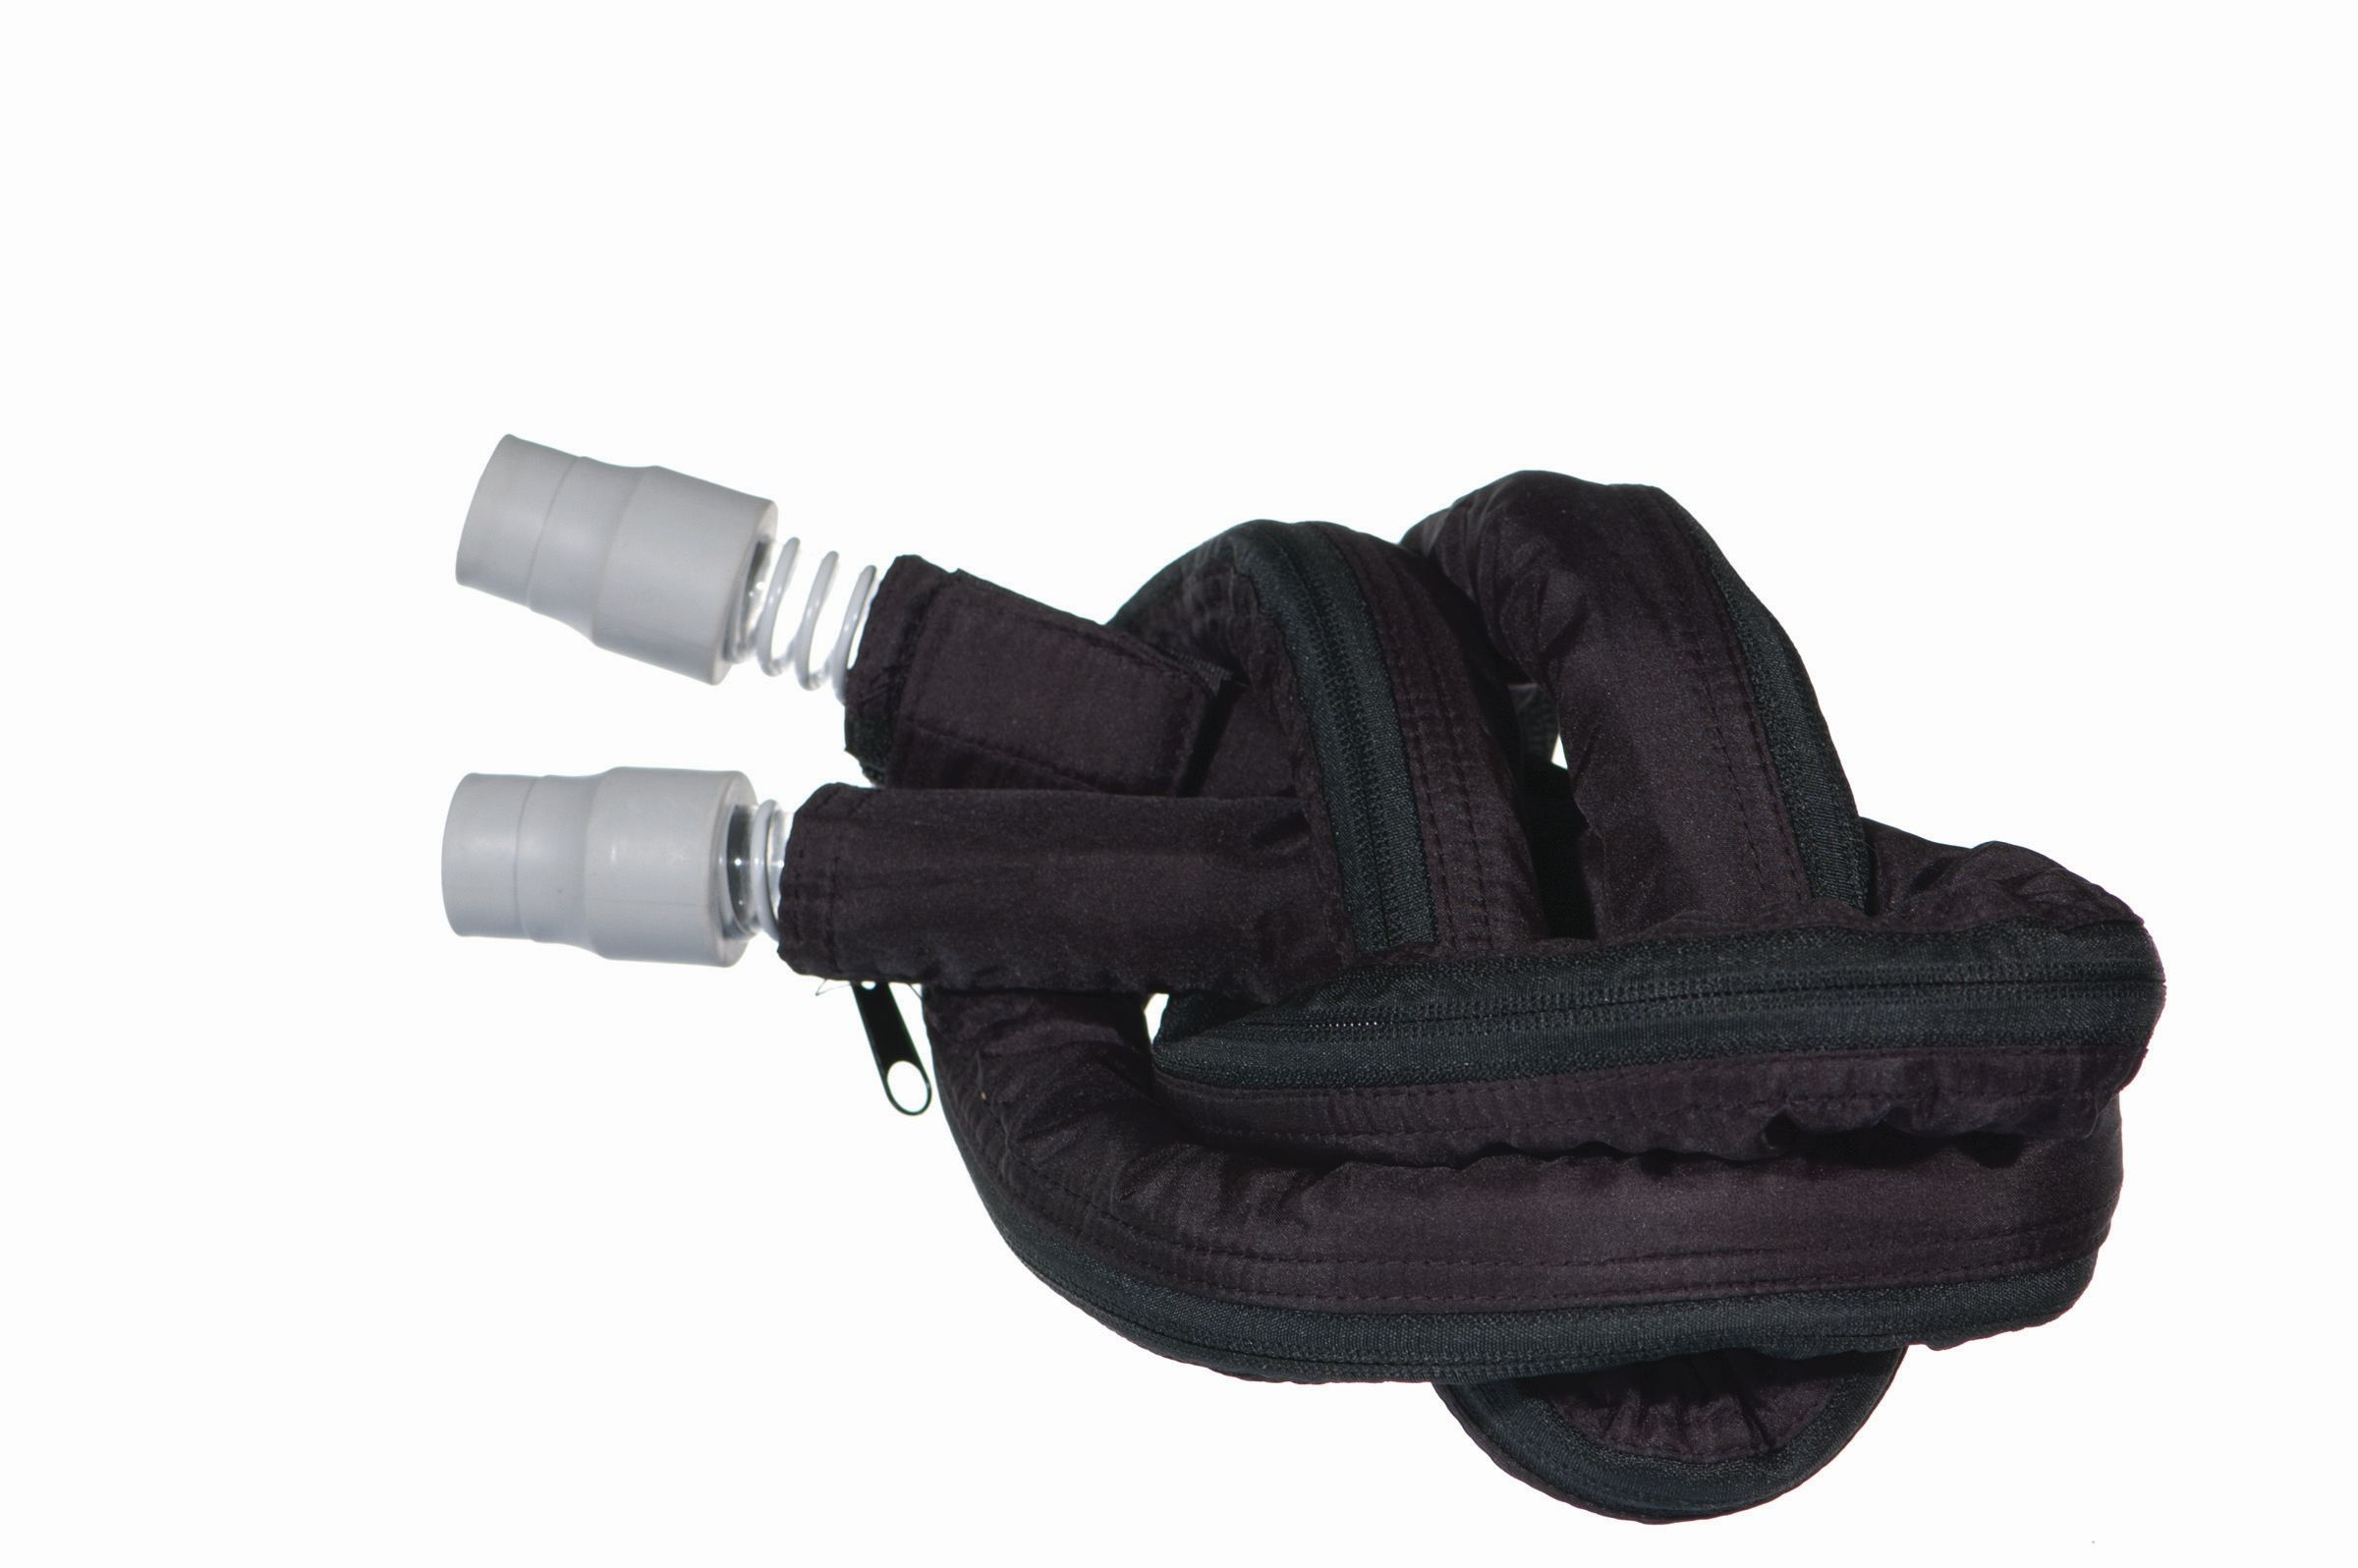 TC-6-BLACK Tubing Wrap product photo